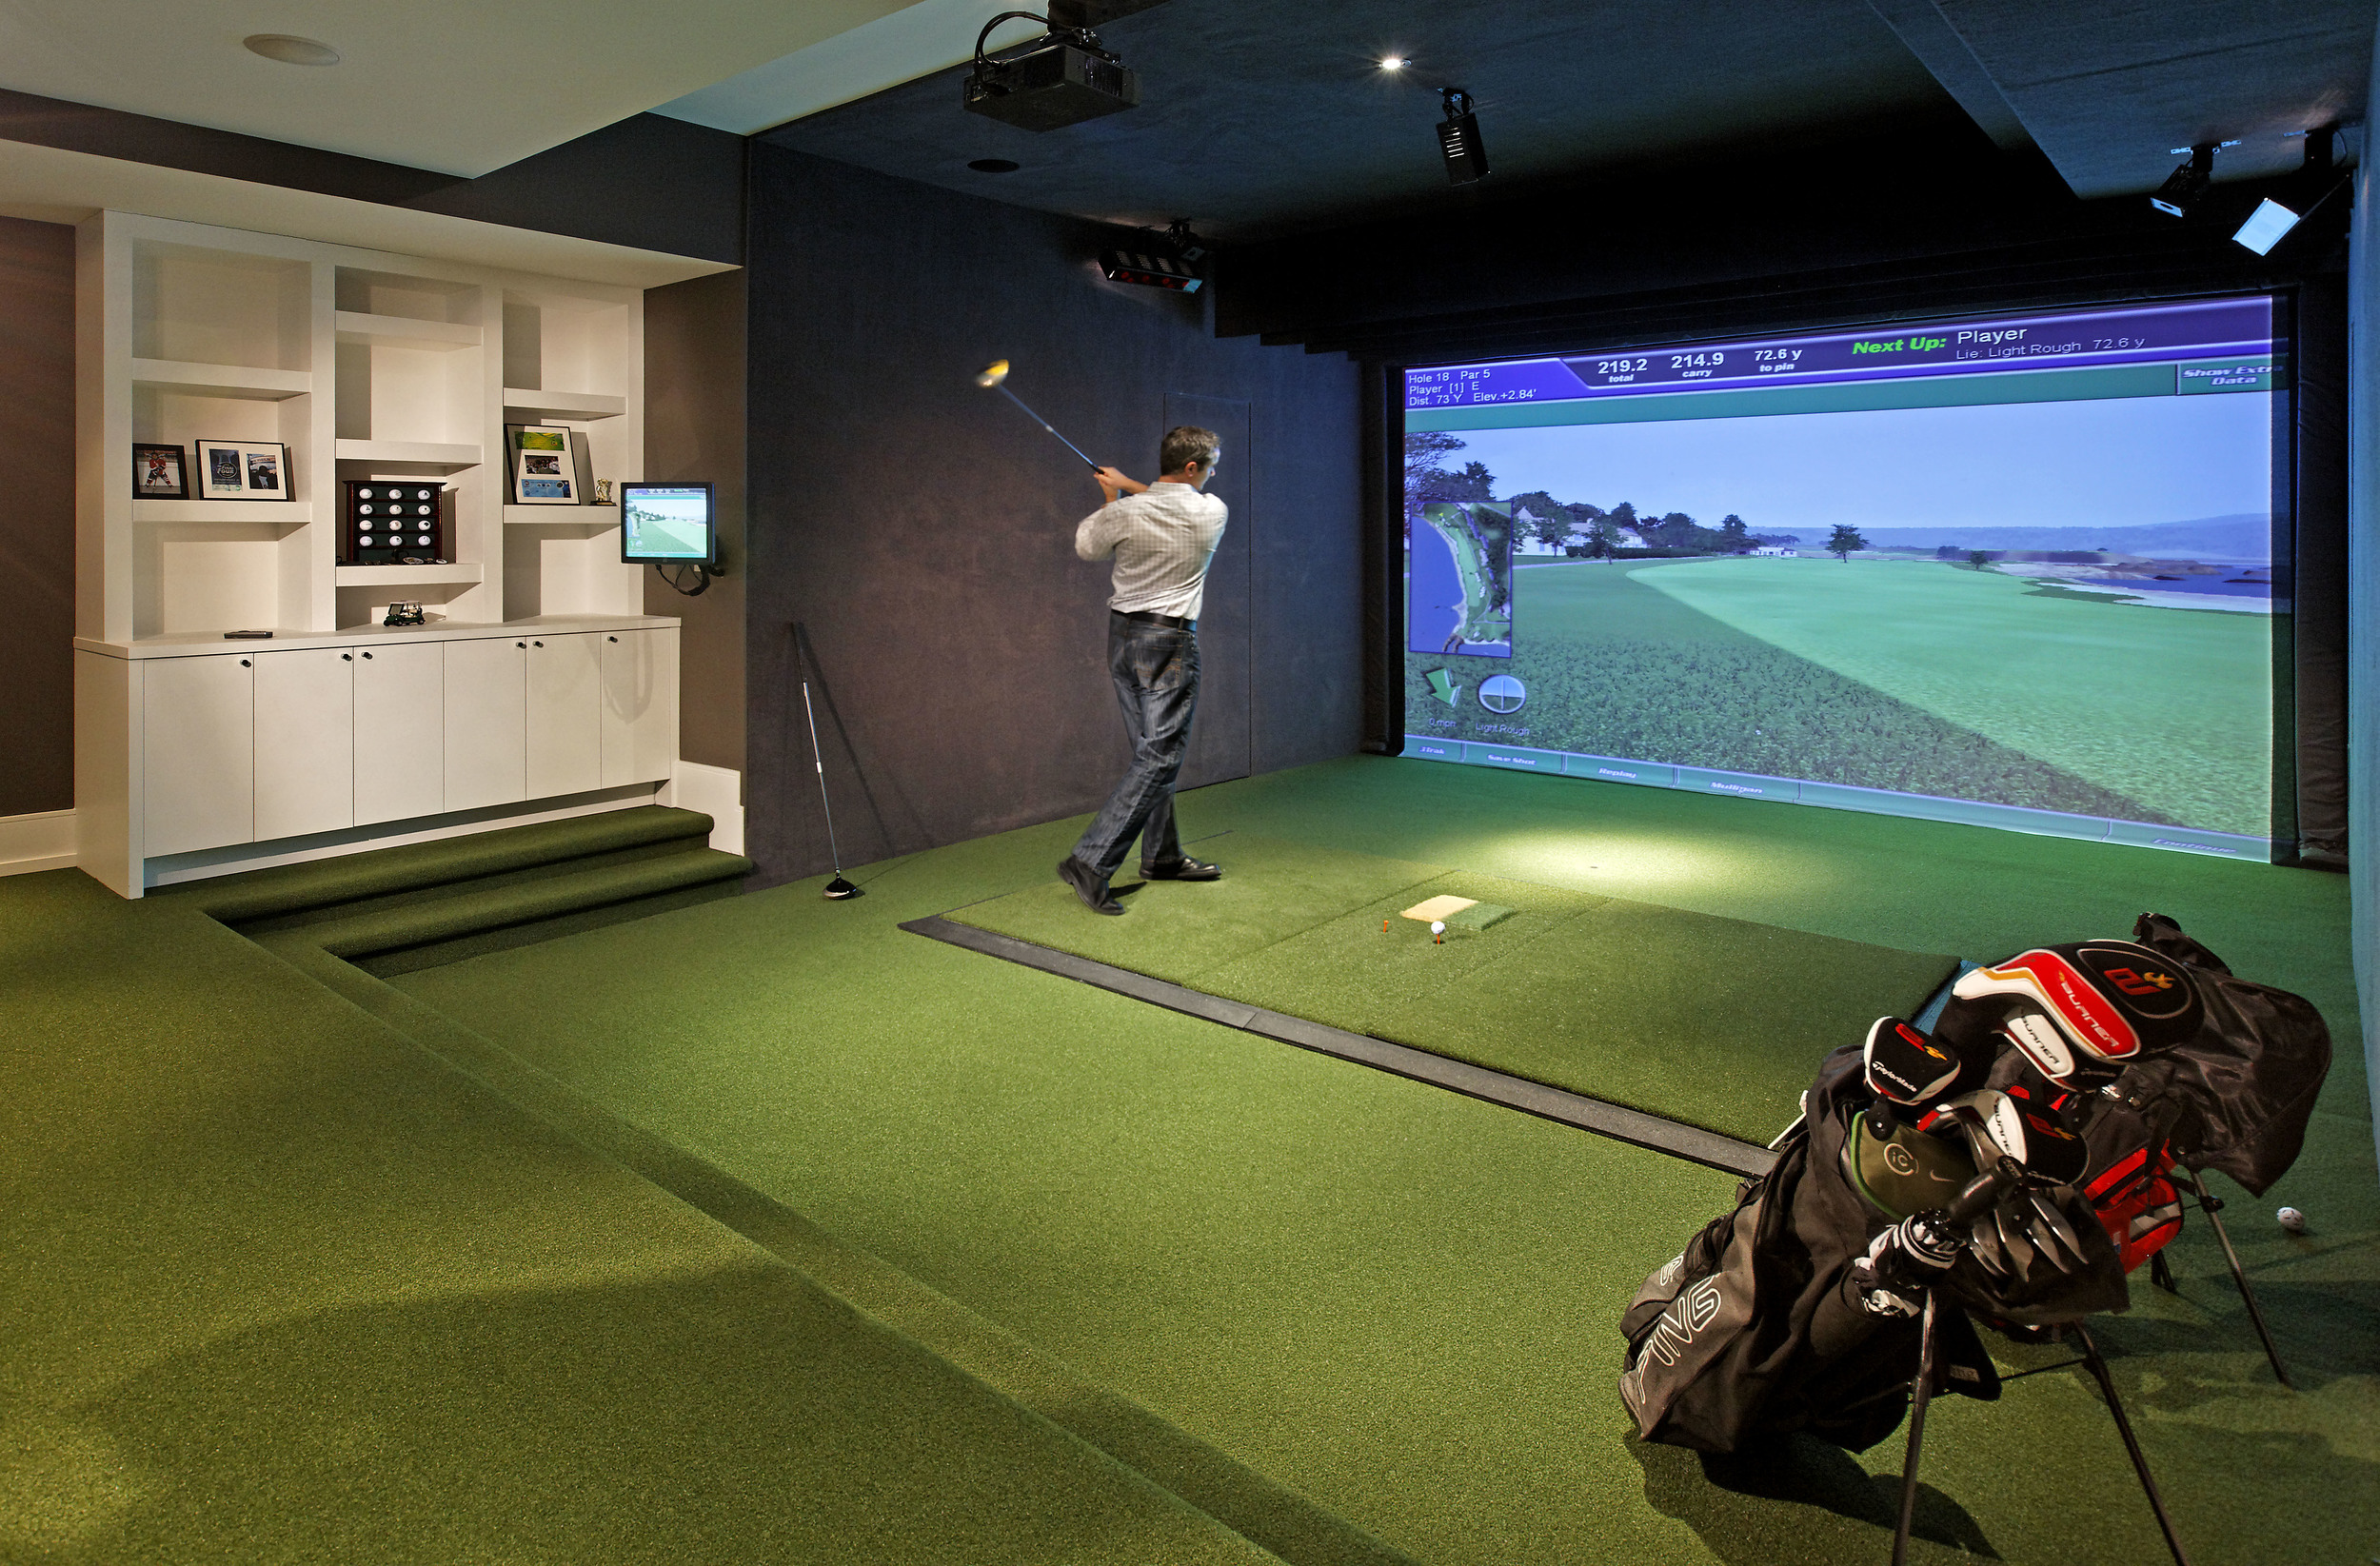 One of the objectives for this long-awaited, custom-designed dream home was that it would suit all aspects of the family's lifestyle. On the lower level, this indoor virtual golf simulator room was created for an avid golfer, but will easily transition to a home theatre as his young family grows.